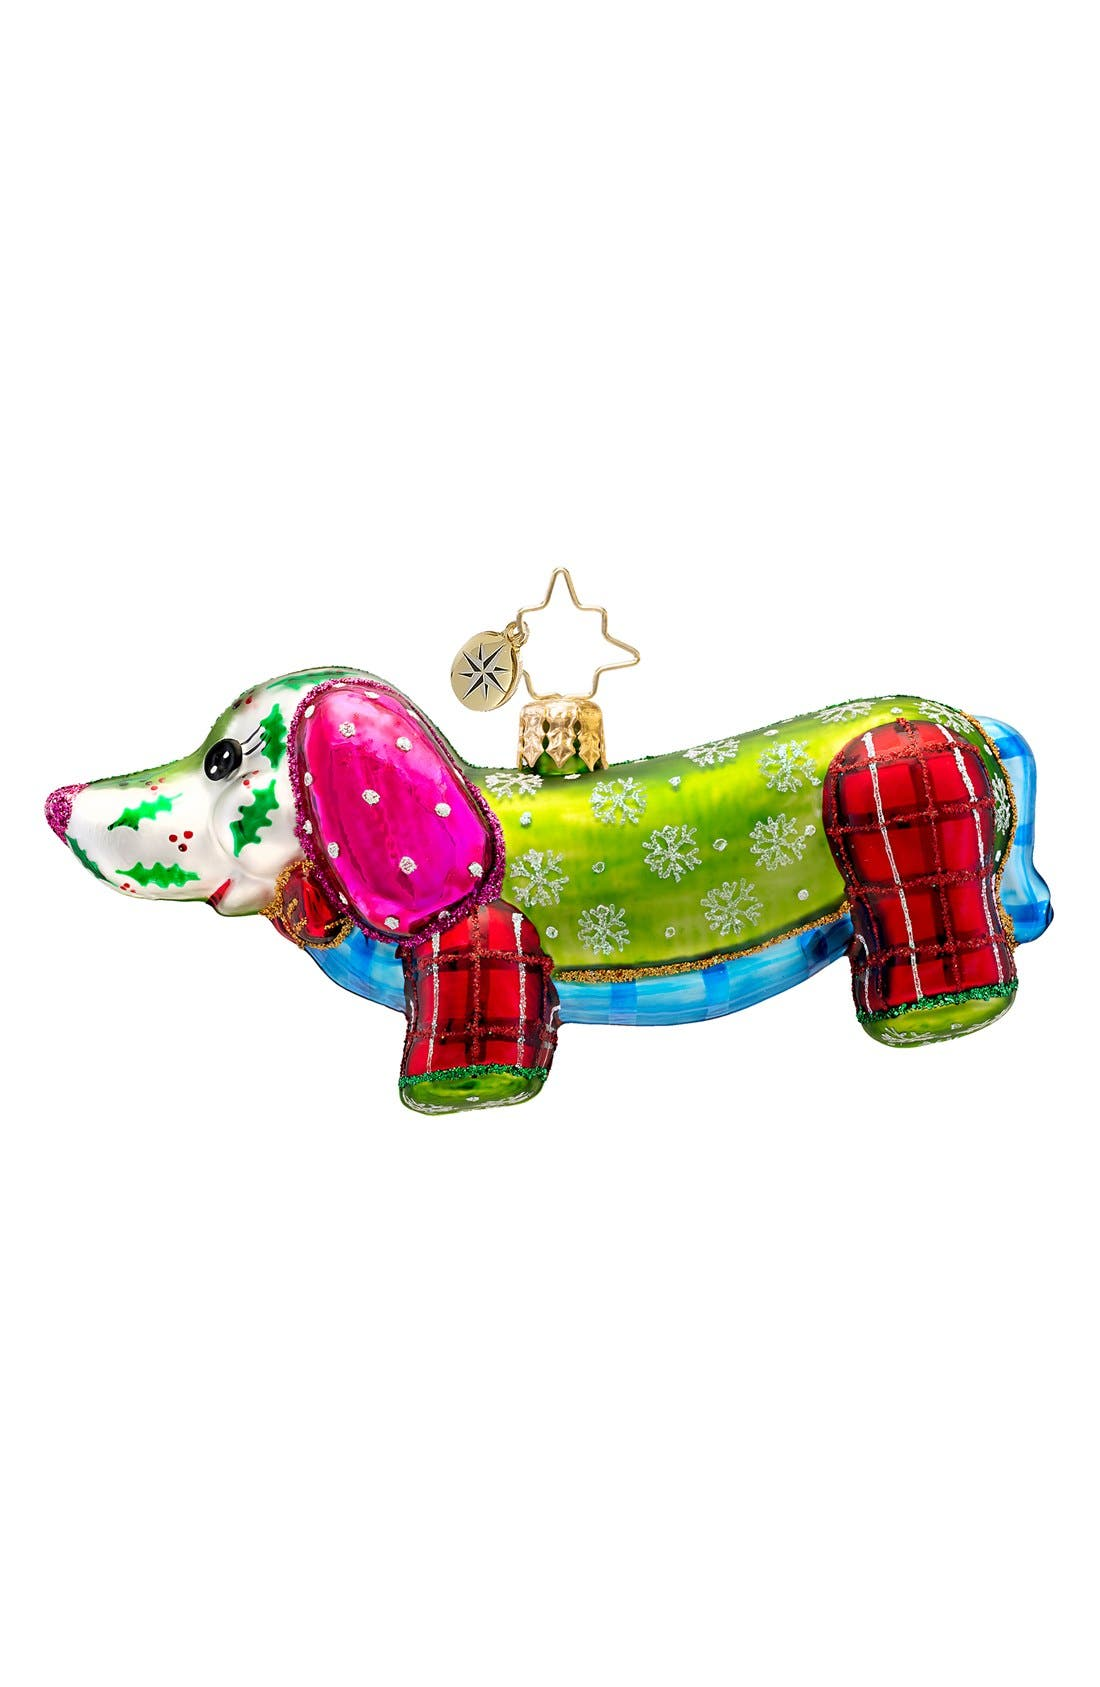 'Patchwork Winnie' Handcrafted Glass Dachshund Ornament, Main, color, 300